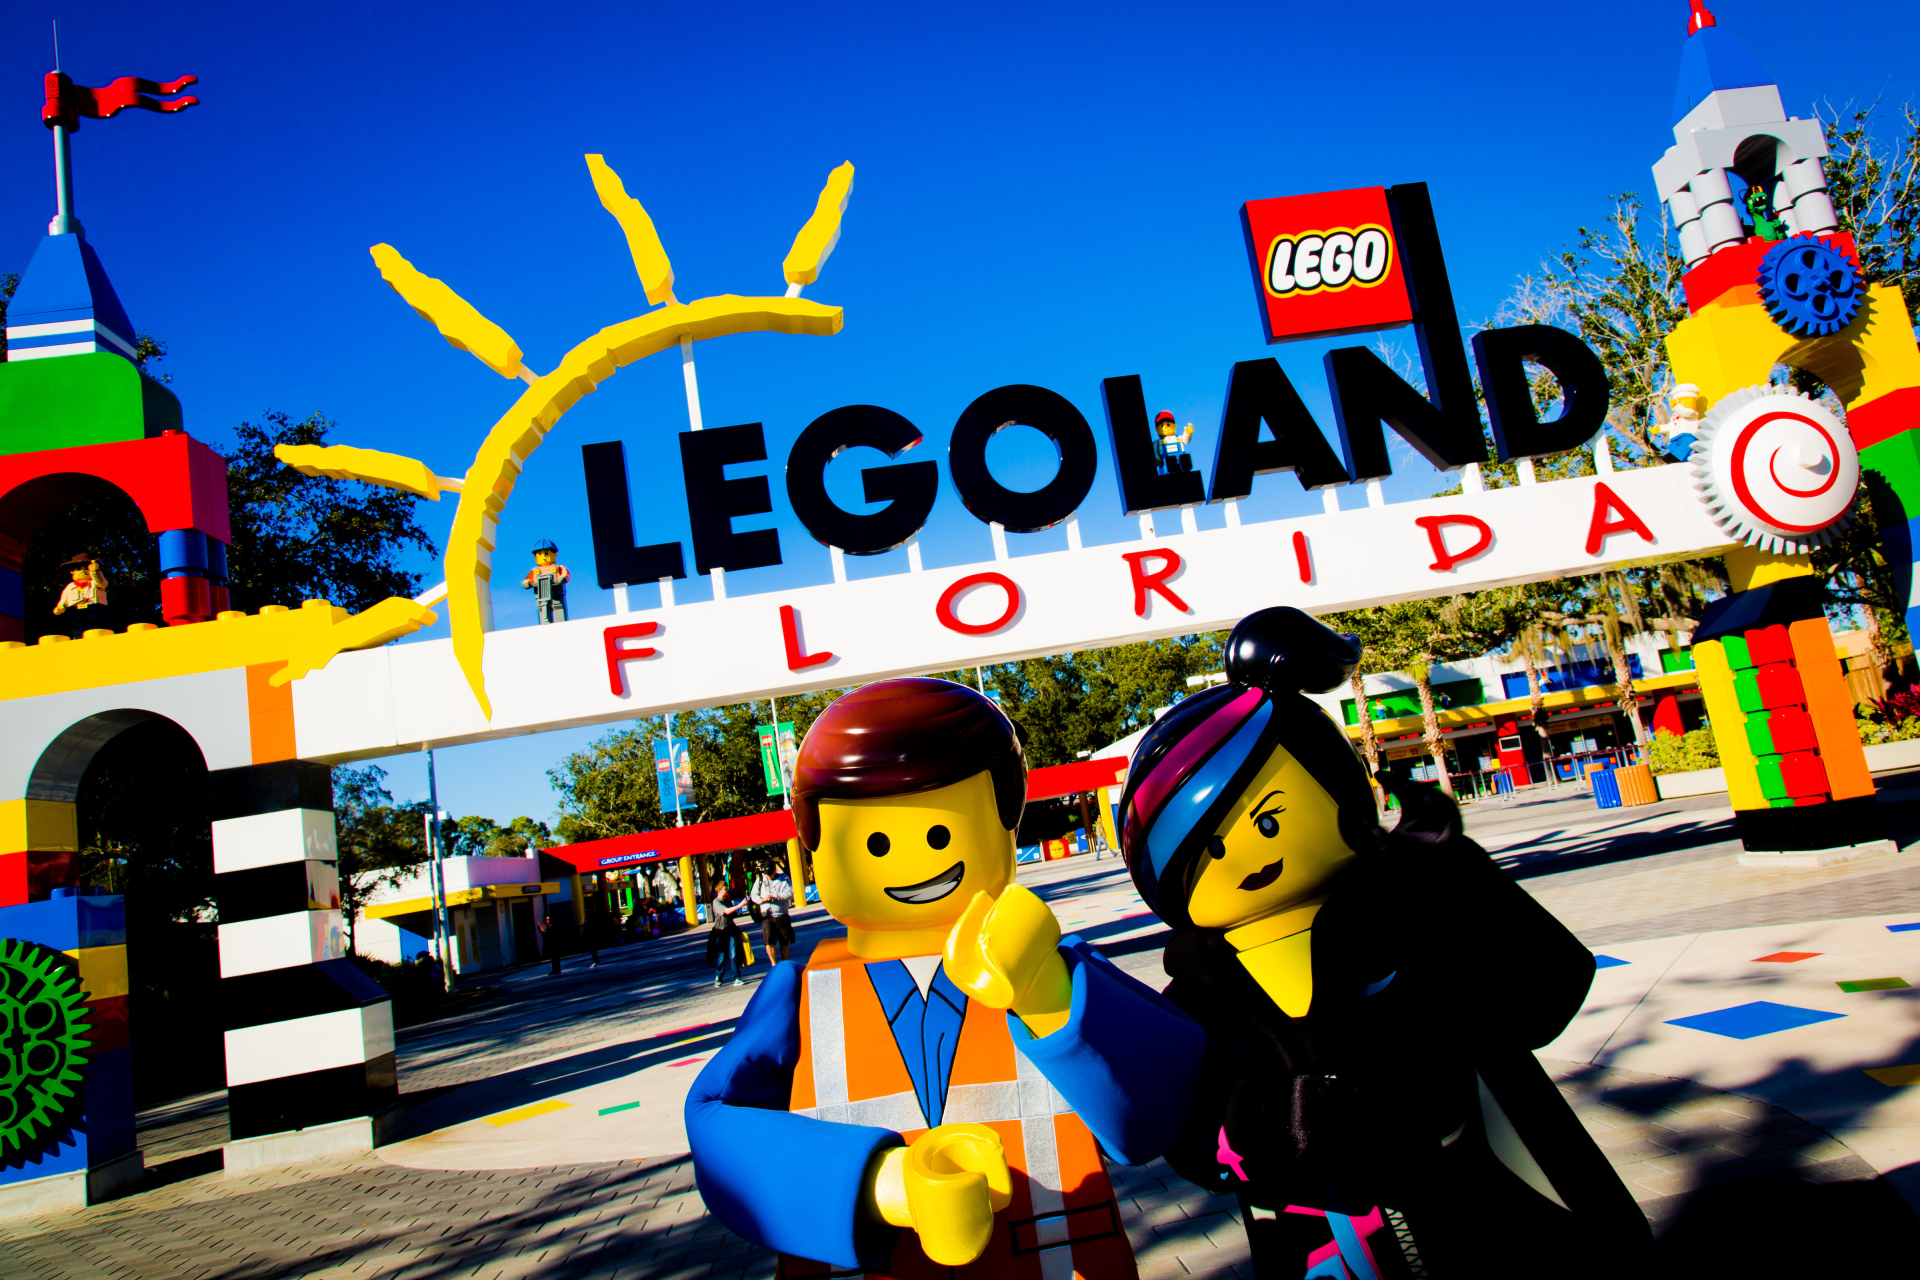 Picky eater? Food allergies? Dietary restrictions? LEGOLAND Florida We'll take care of you!